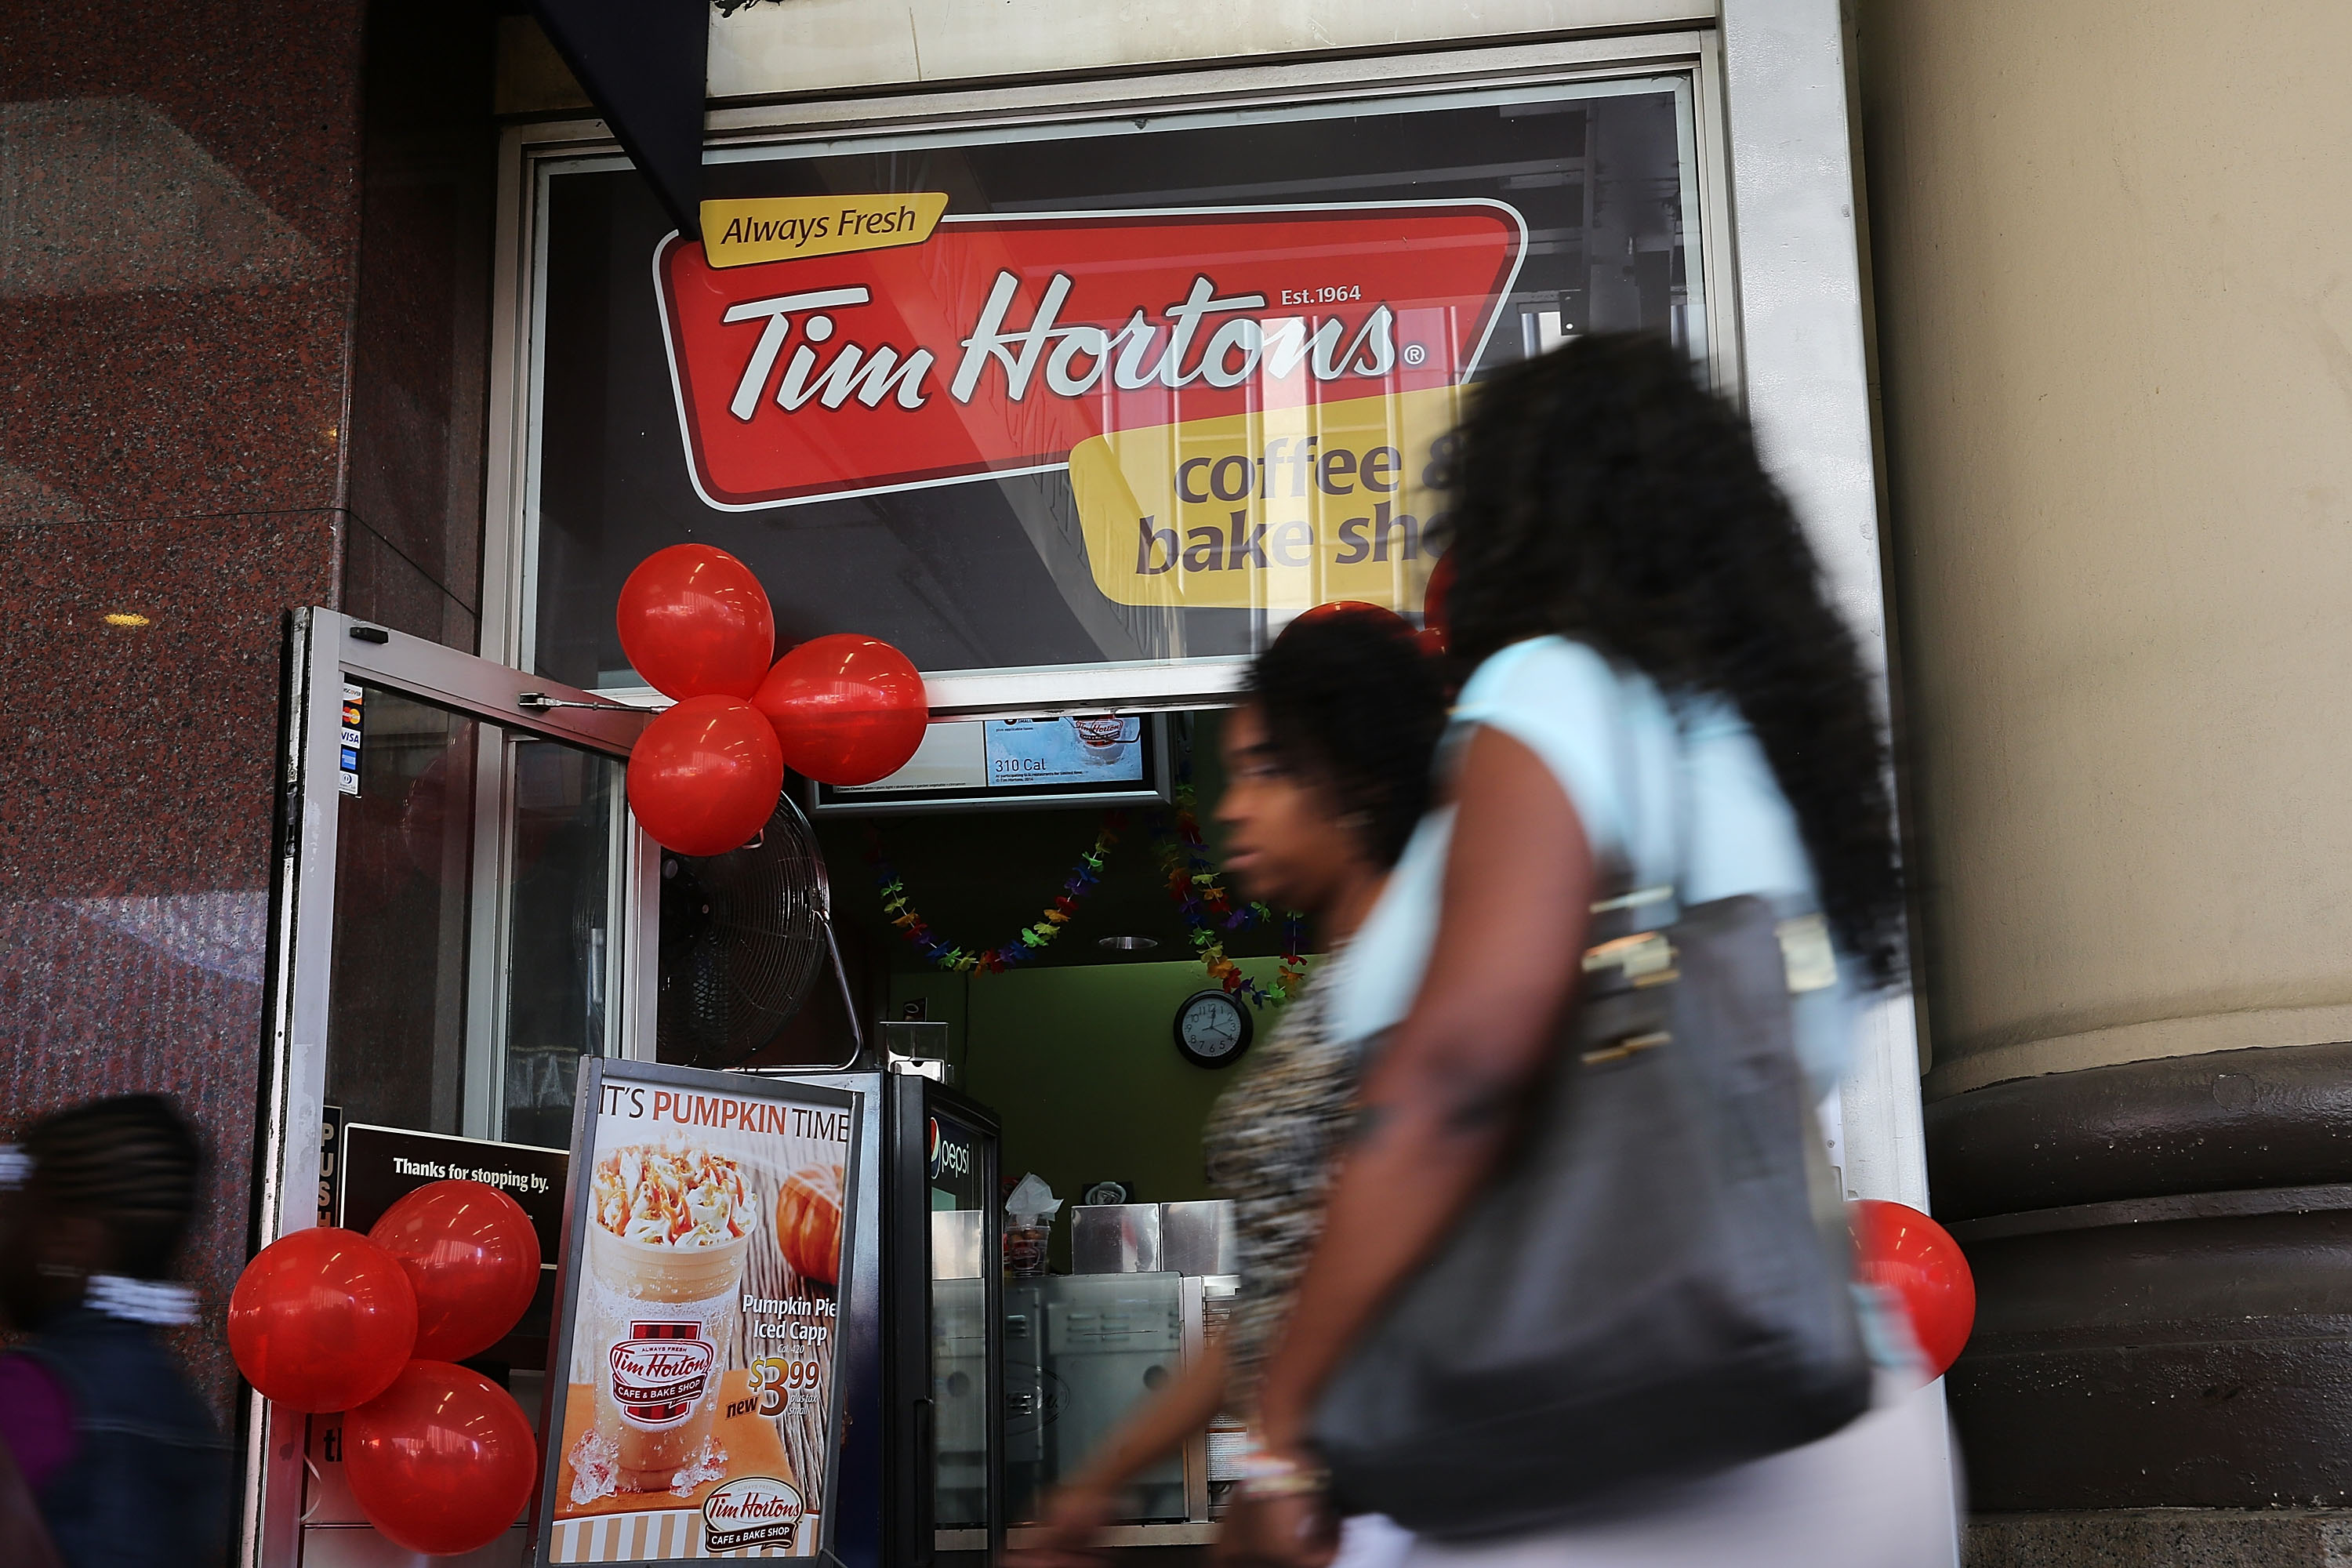 Tim Hortons sues parent company Restaurant Brands for breach of contract